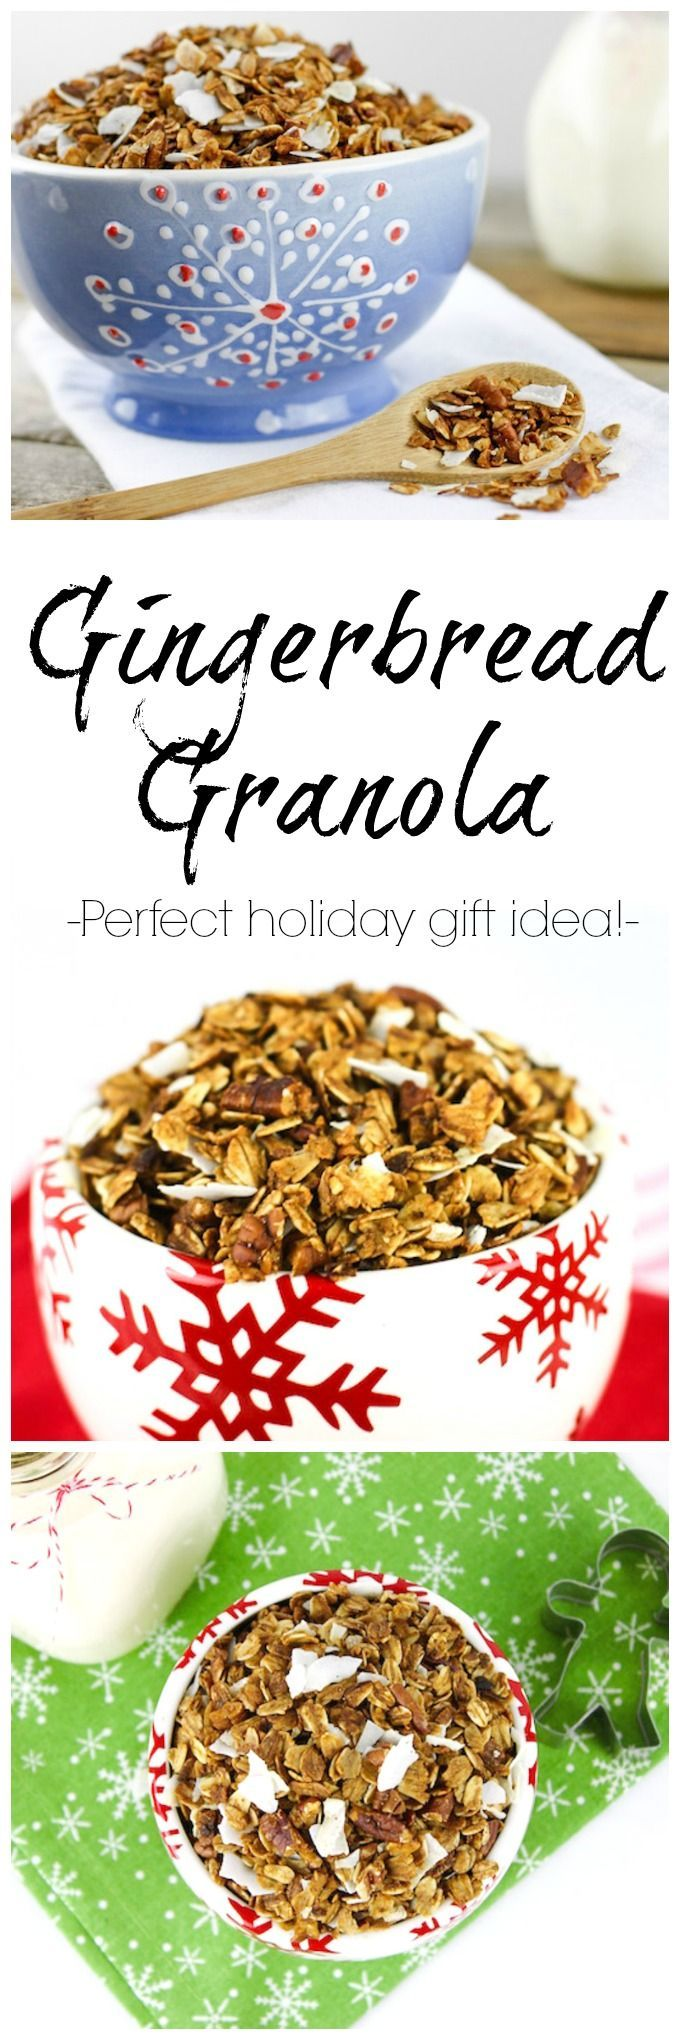 This Gingerbread Granola recipe is everything you love about gingerbread transformed into a crunchy and satisfying granola suitable for breakfast  snacking and edible holiday gifts